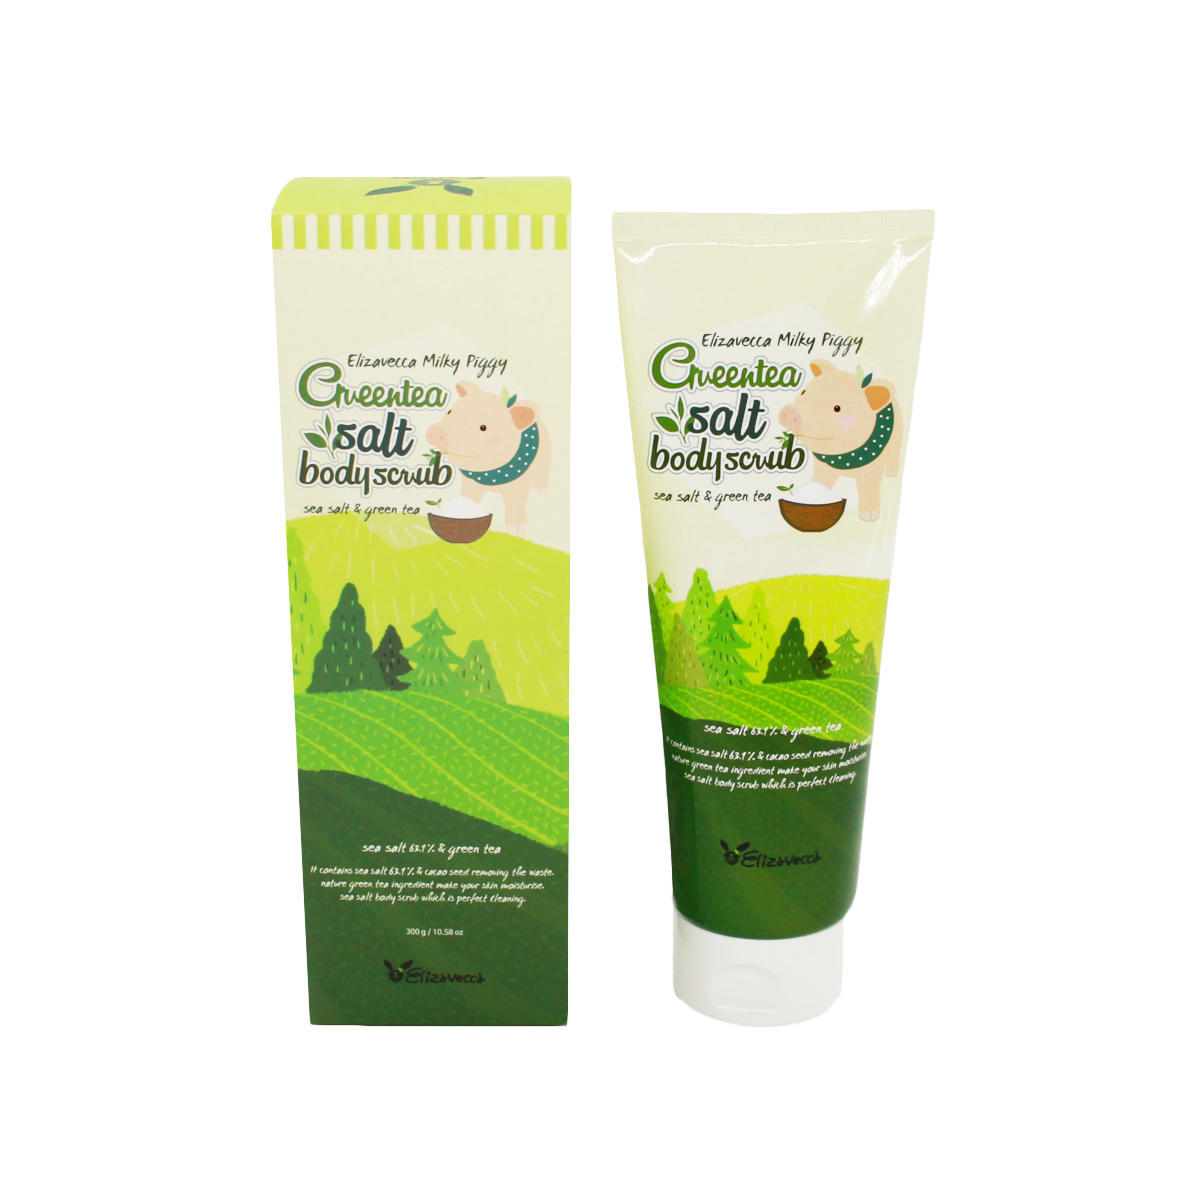 Скрабы для тела Скраб для тела Elizavecca MIlky Piggy Green Tea Salt Body Scrub (tube), 300 мл import_files_6f_6f7656195abf11e980fb3408042974b1_6f76561a5abf11e980fb3408042974b1.jpg